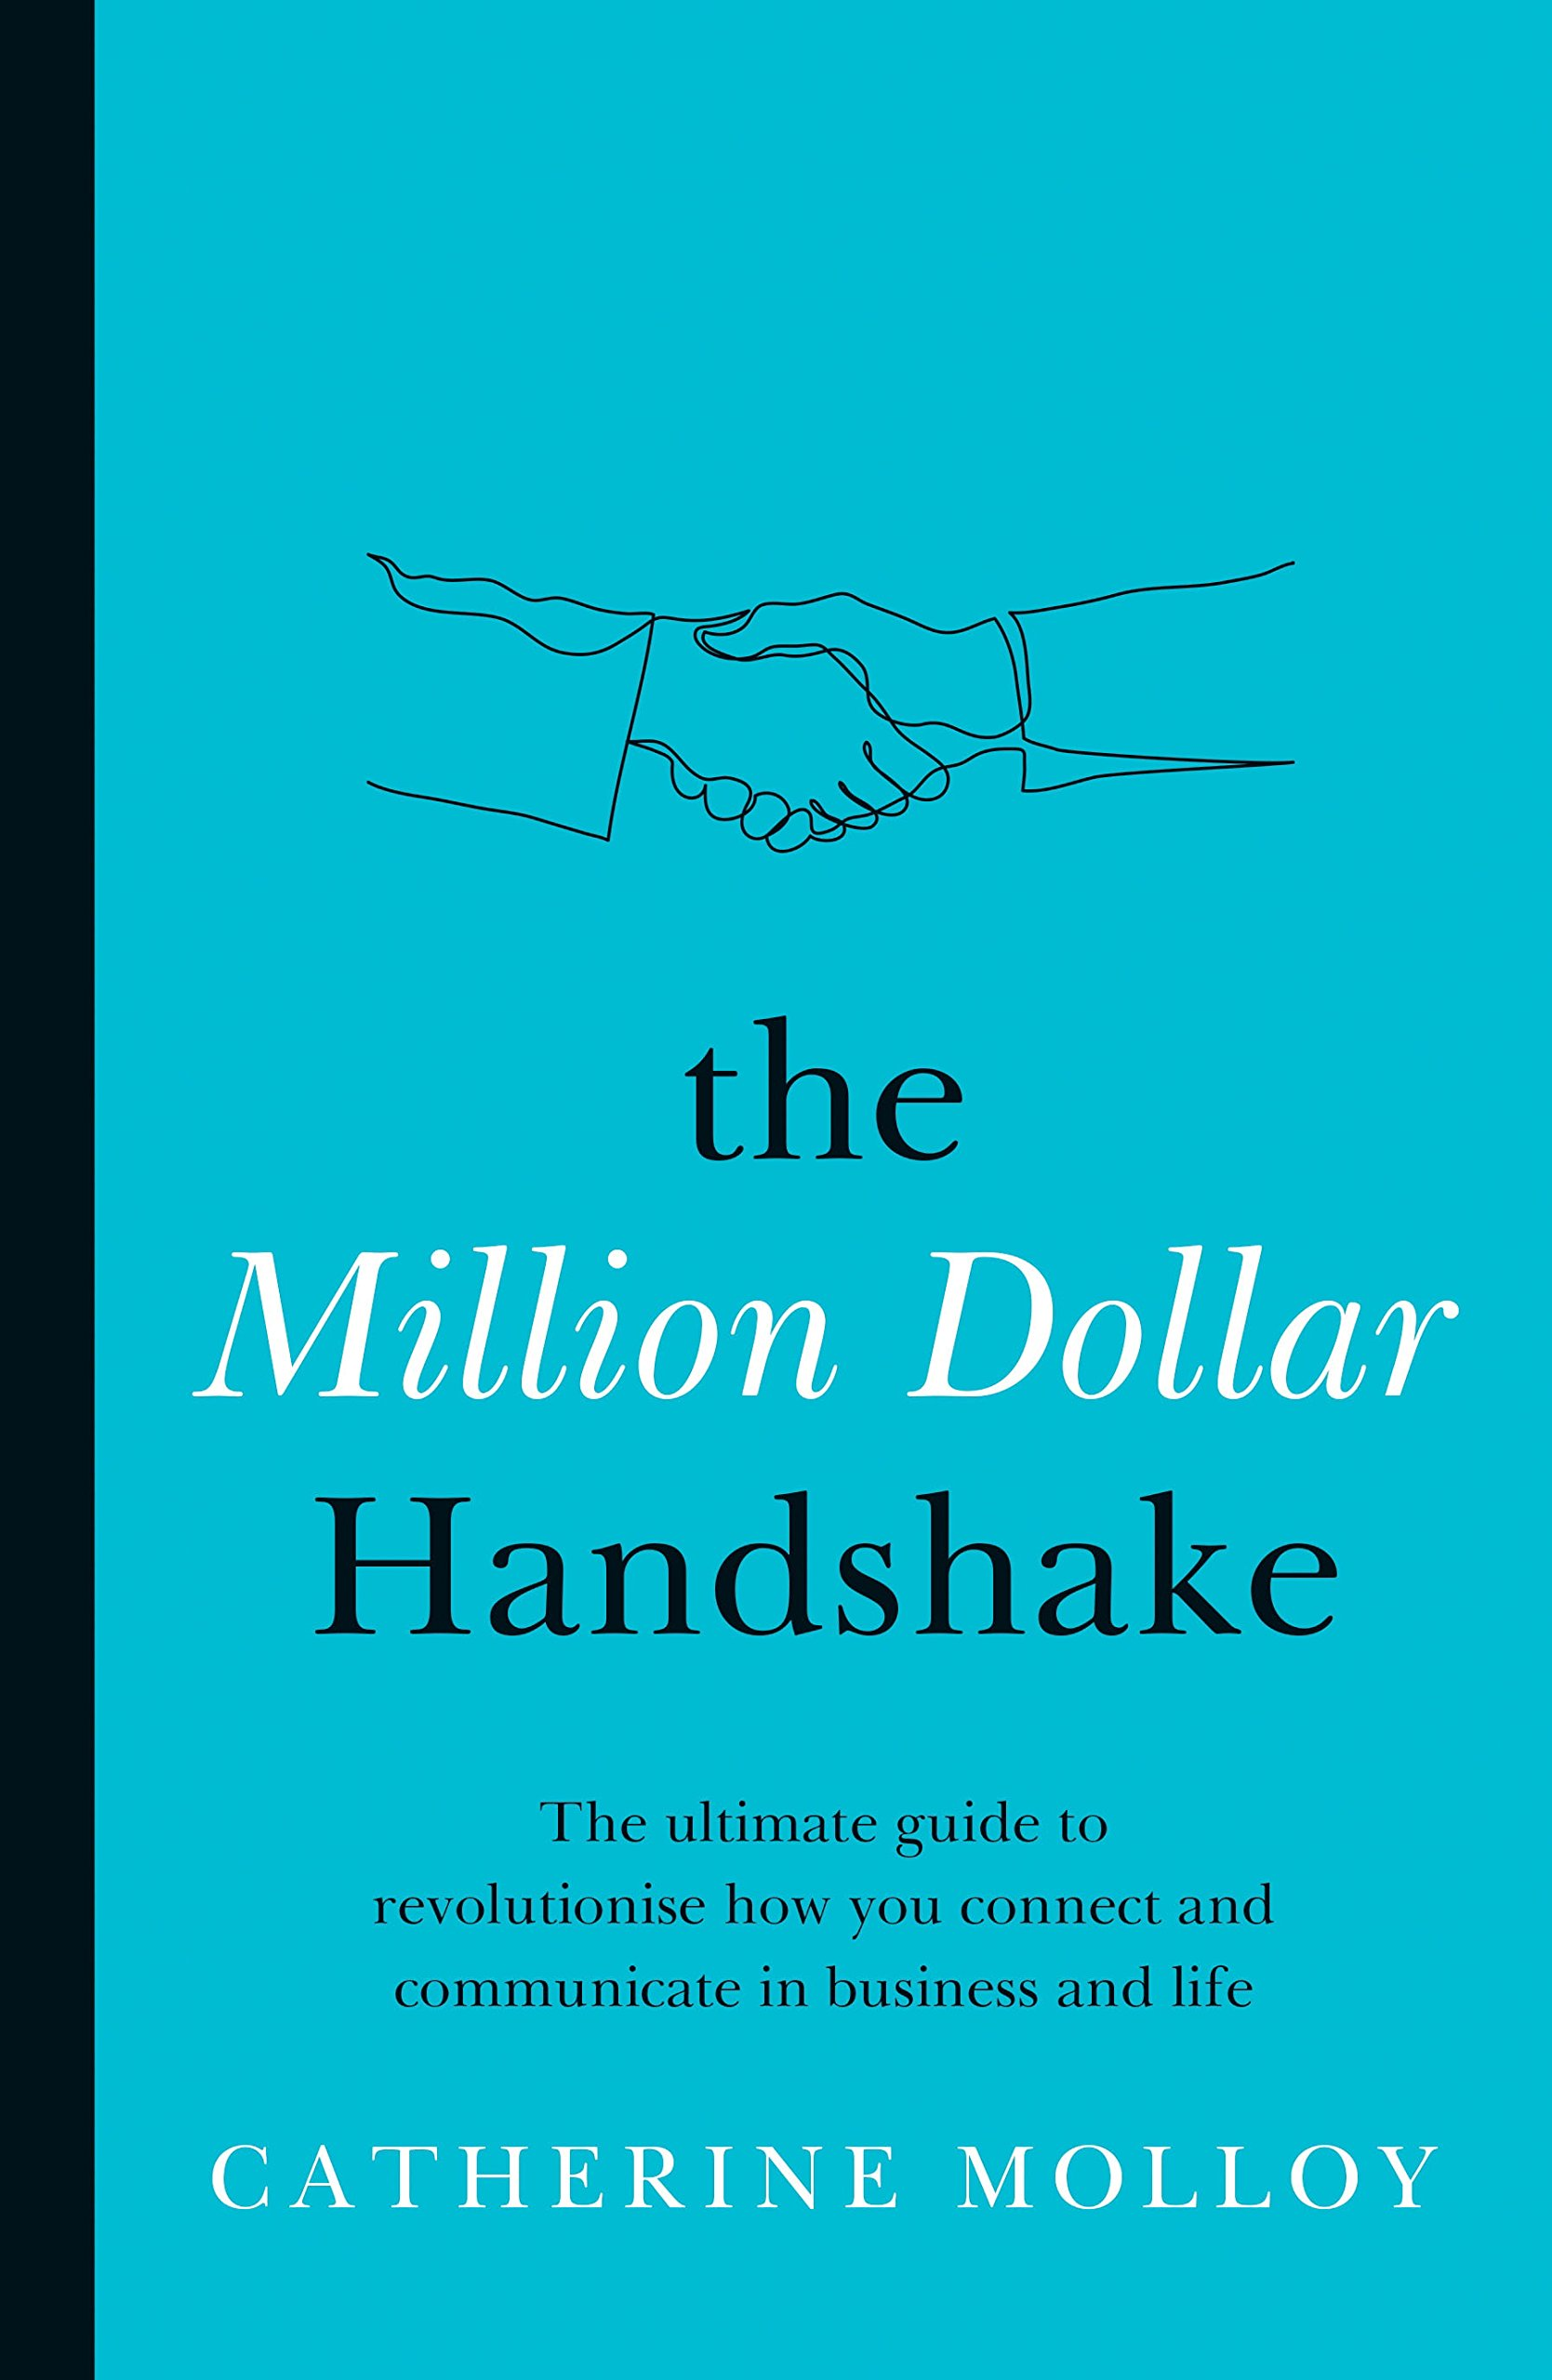 The Million Dollar Handshake: The ultimate guide to revolutionise how you connect in business and life